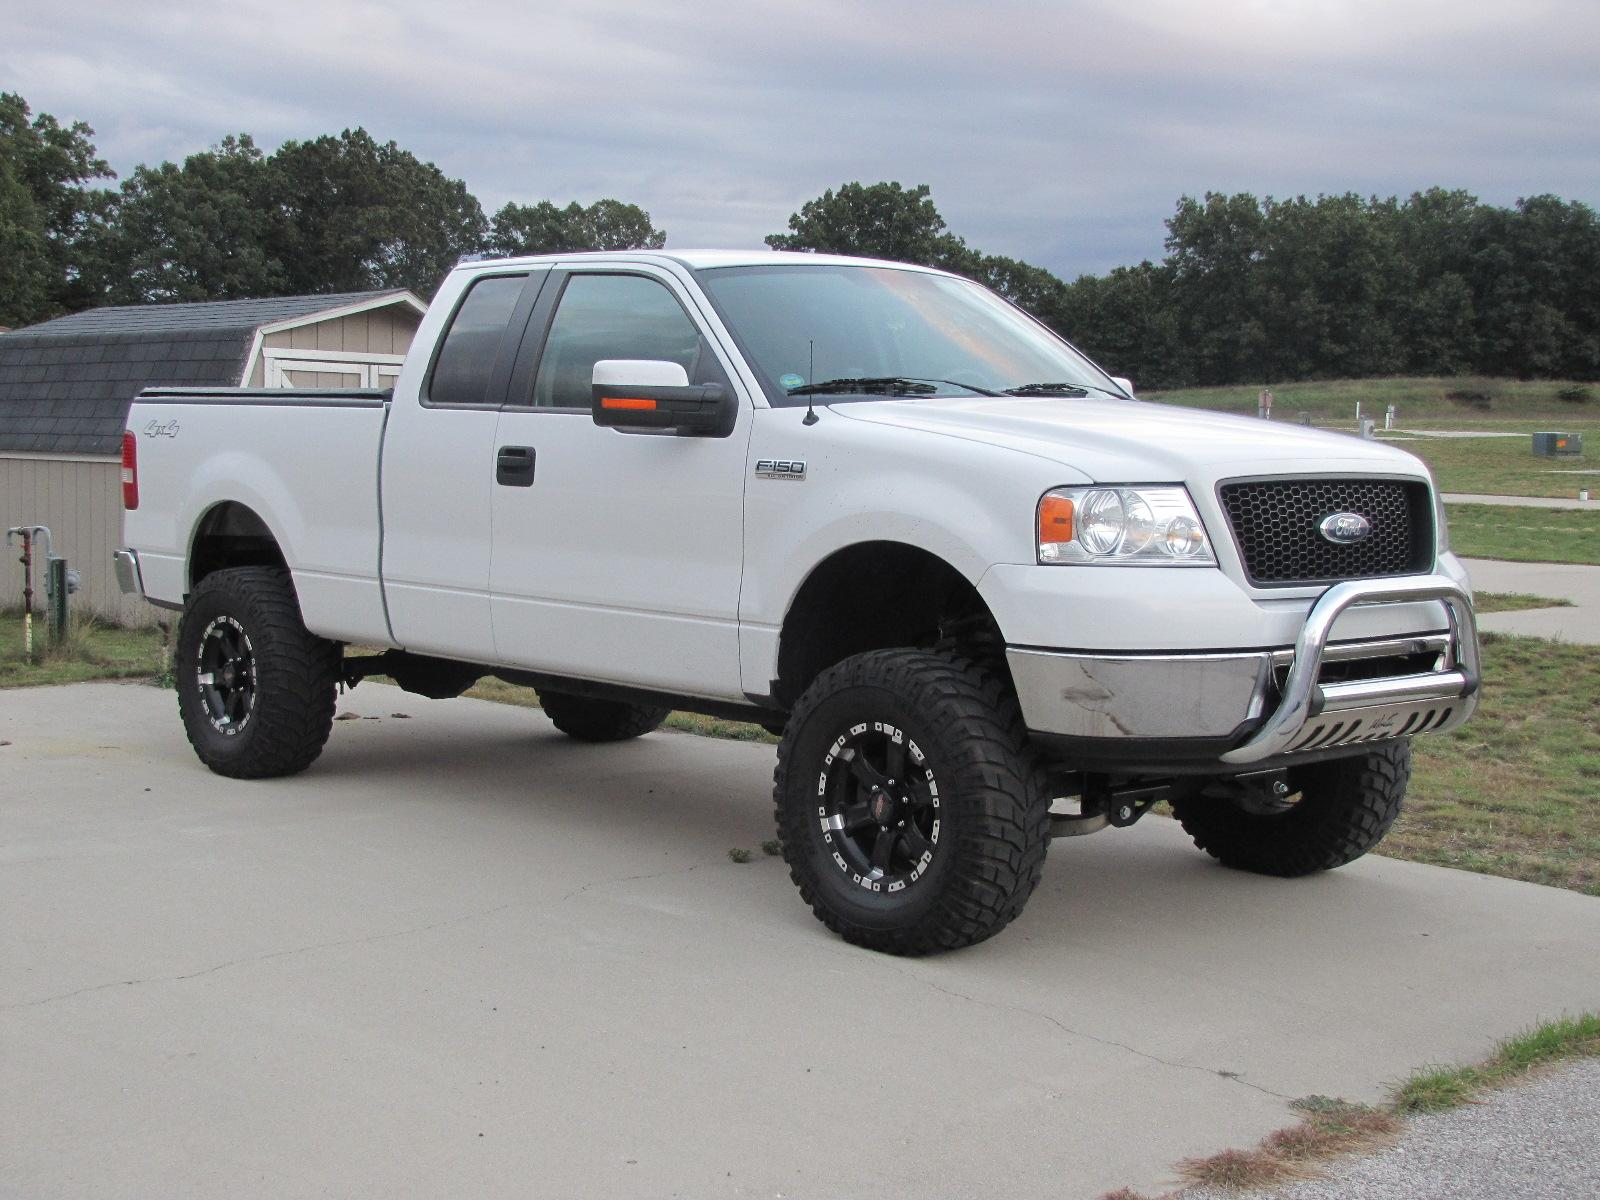 Wiles F150 2006 Ford F150 Super Cabxlt Styleside Pickup 4d 6 1 2 Ft Specs Photos Modification